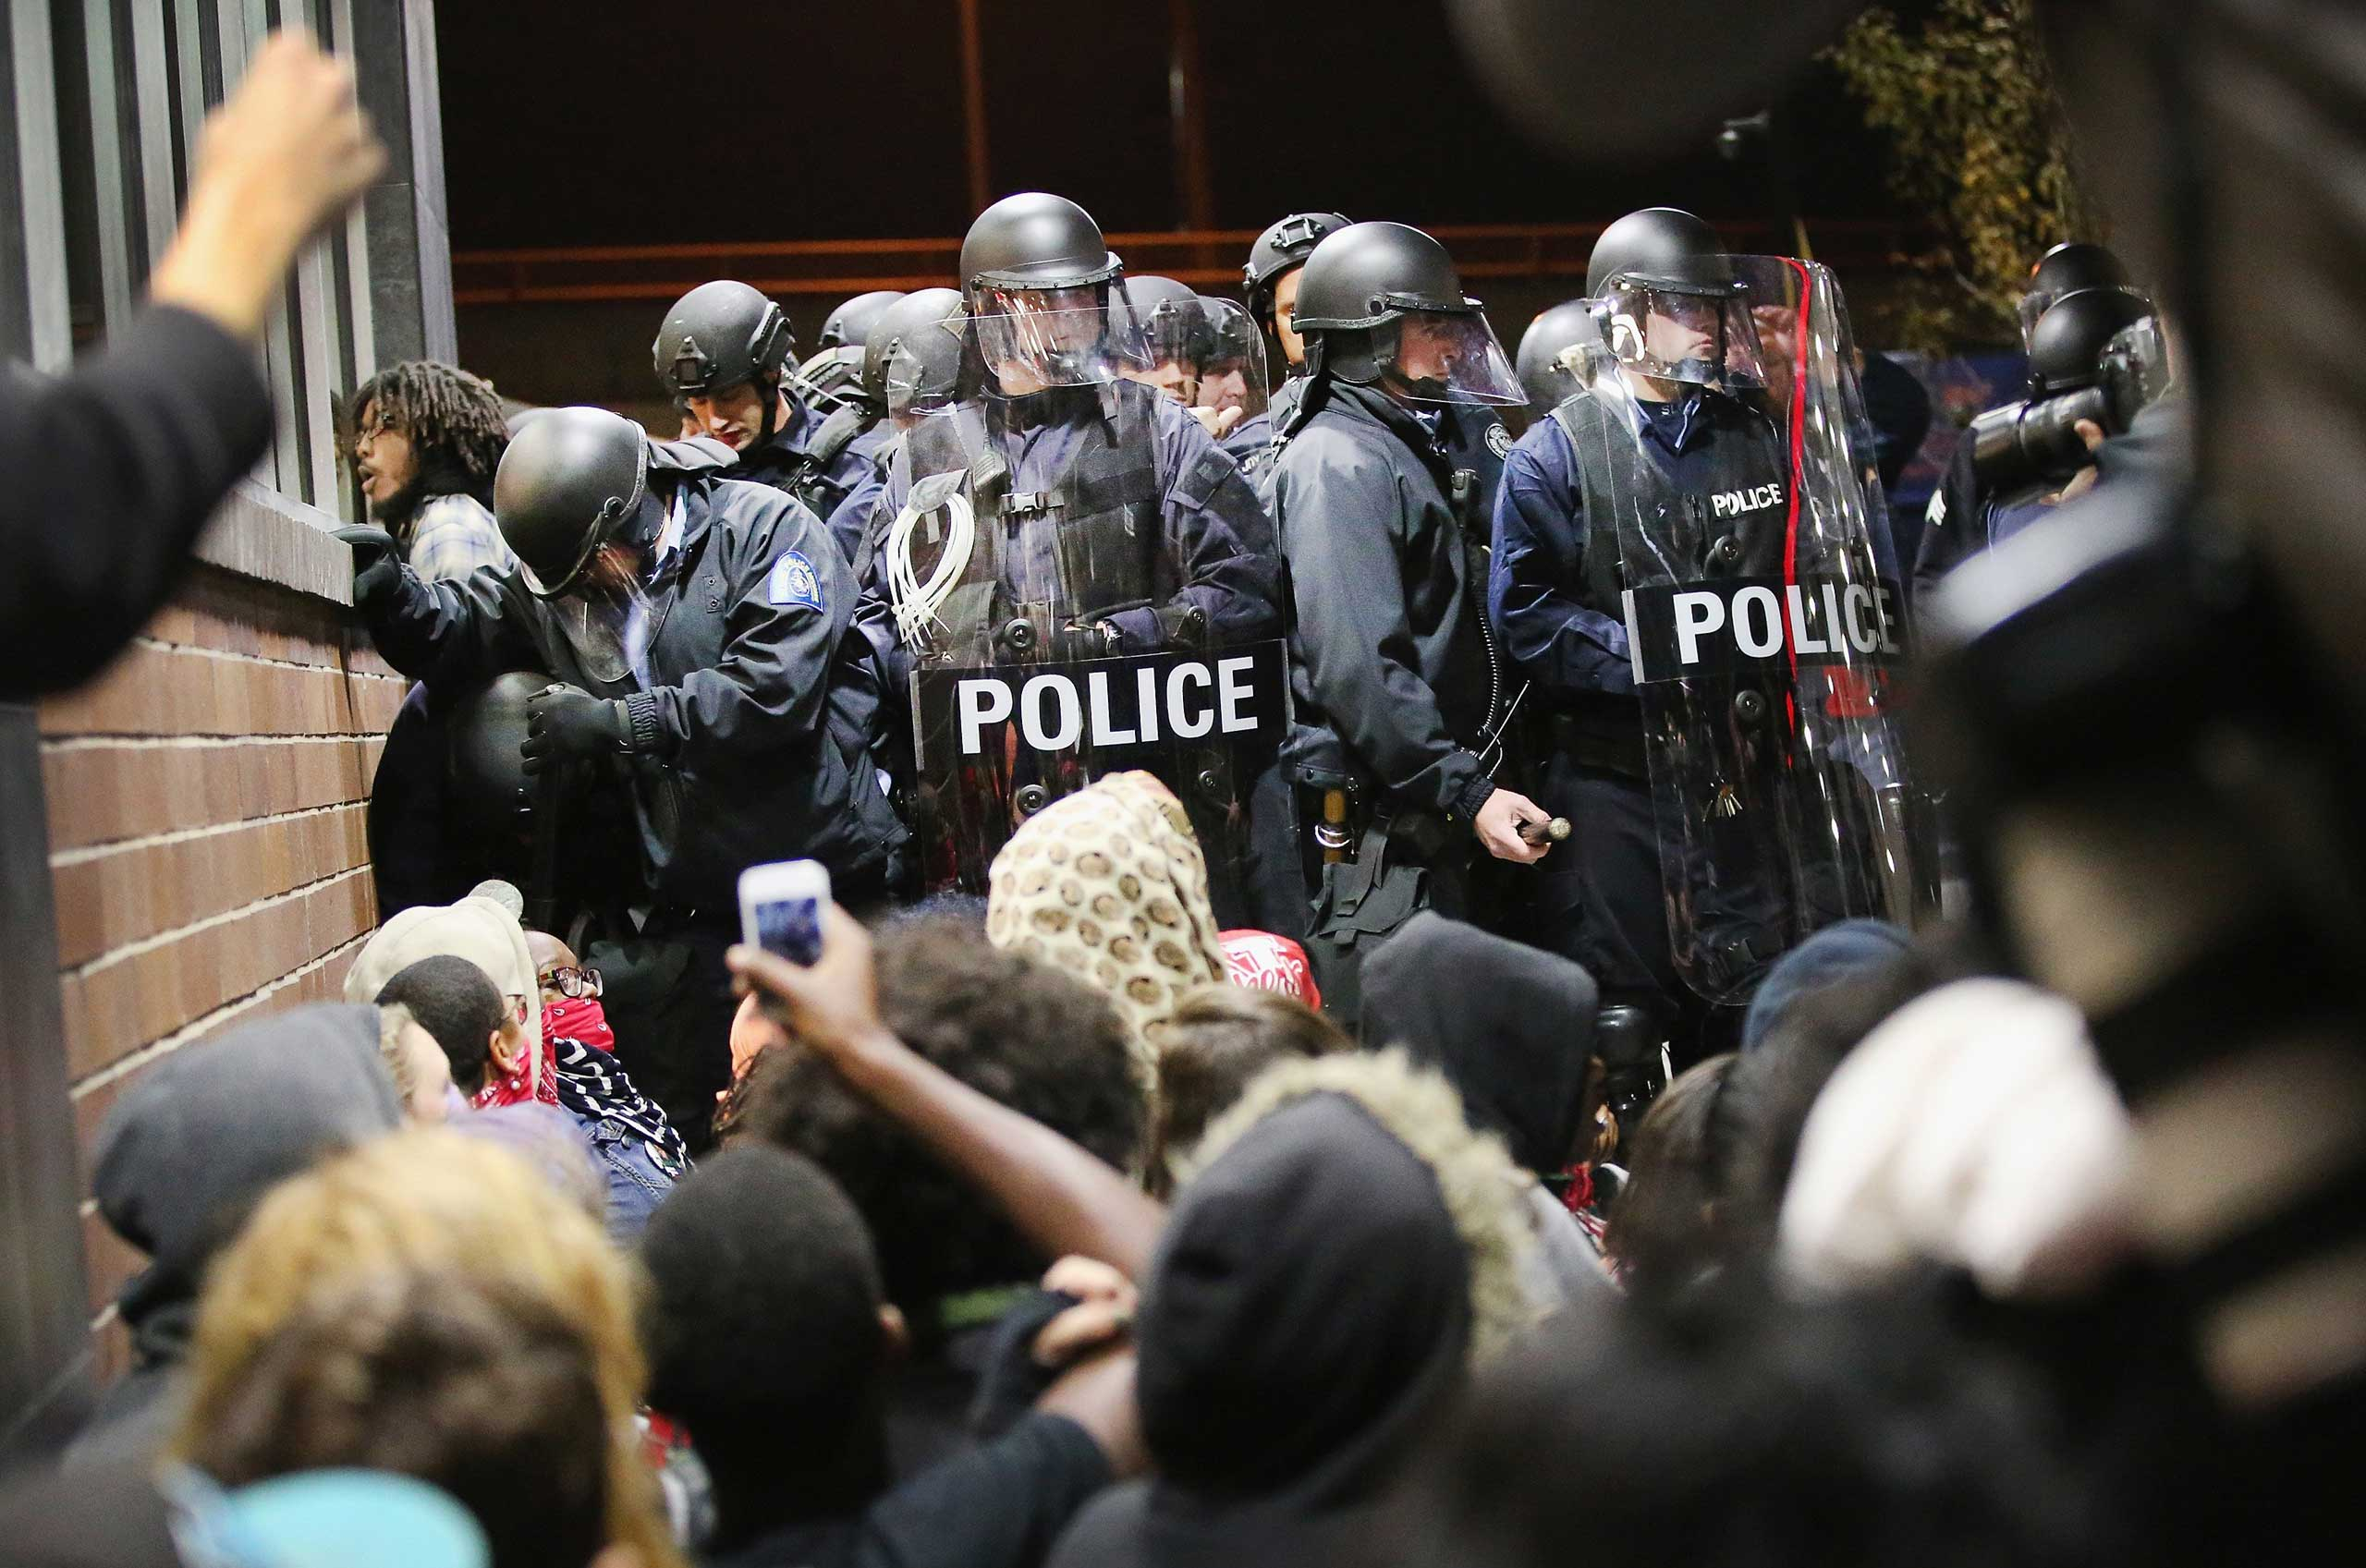 Police arrest demonstrators protesting the killings of 18-year-olds Michael Brown and Vonderrit Myers Jr. in St. Louis on Oct. 12, 2014.